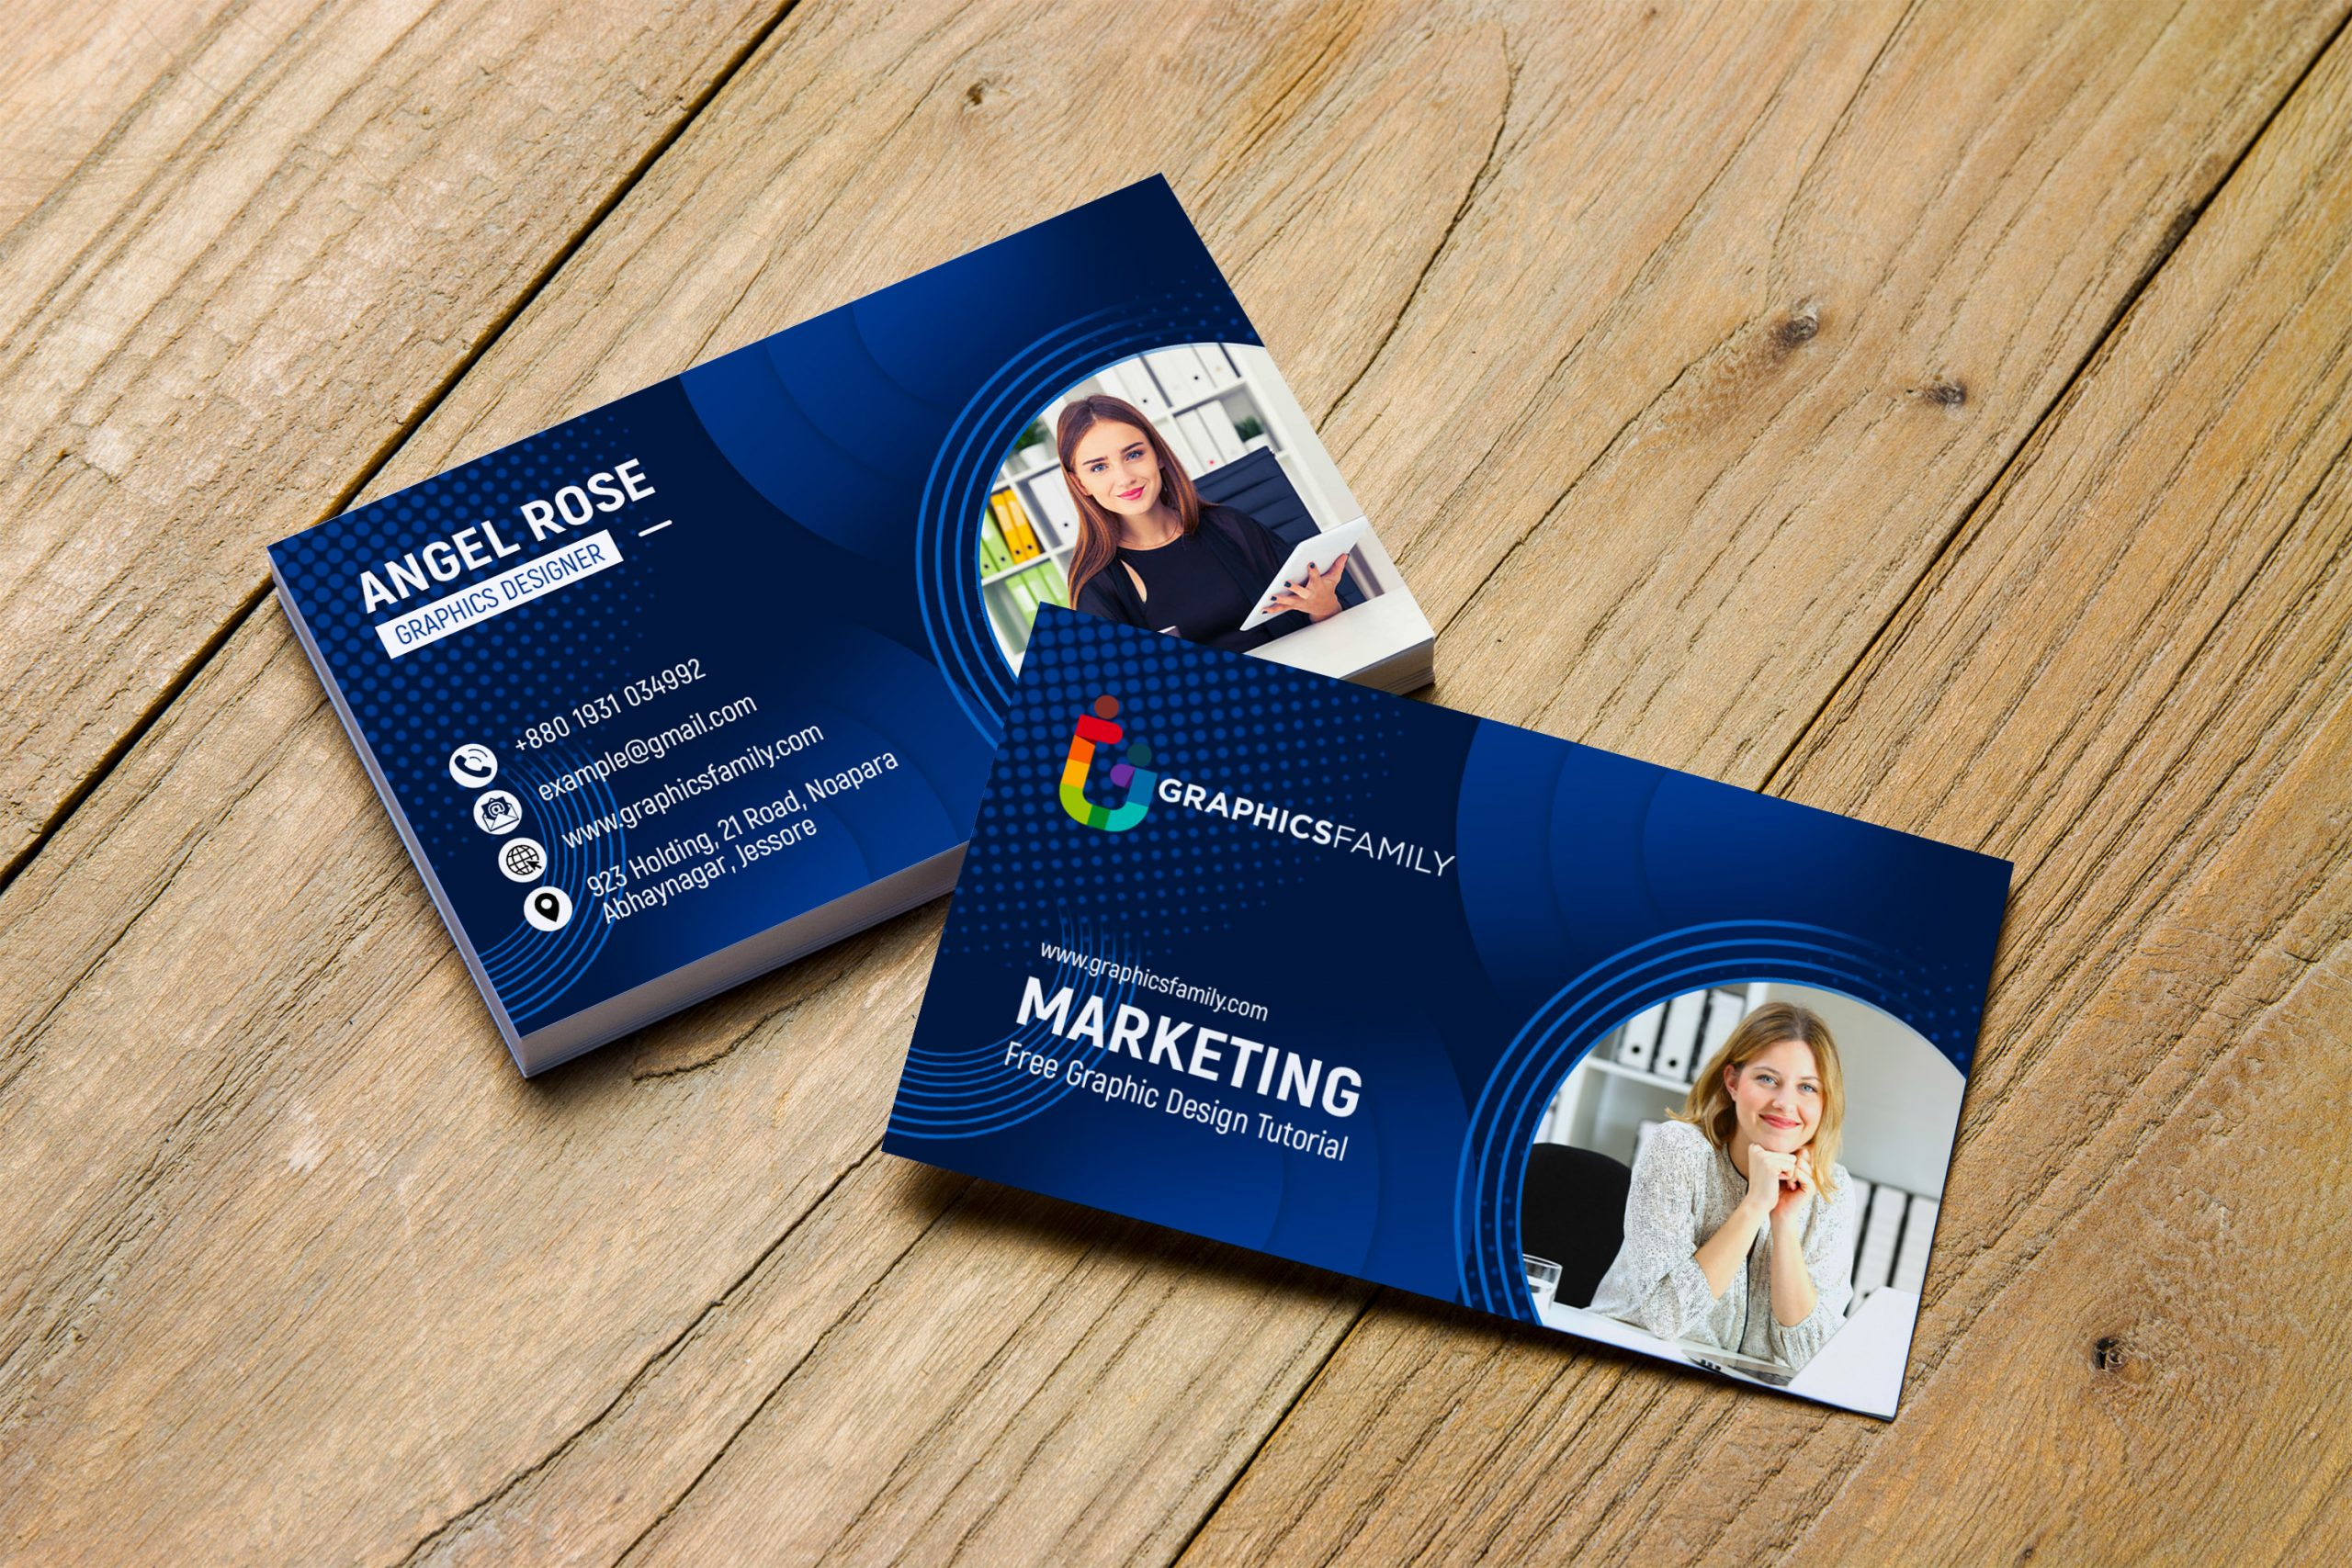 Marketing & Communications Business Cards Template Free Download